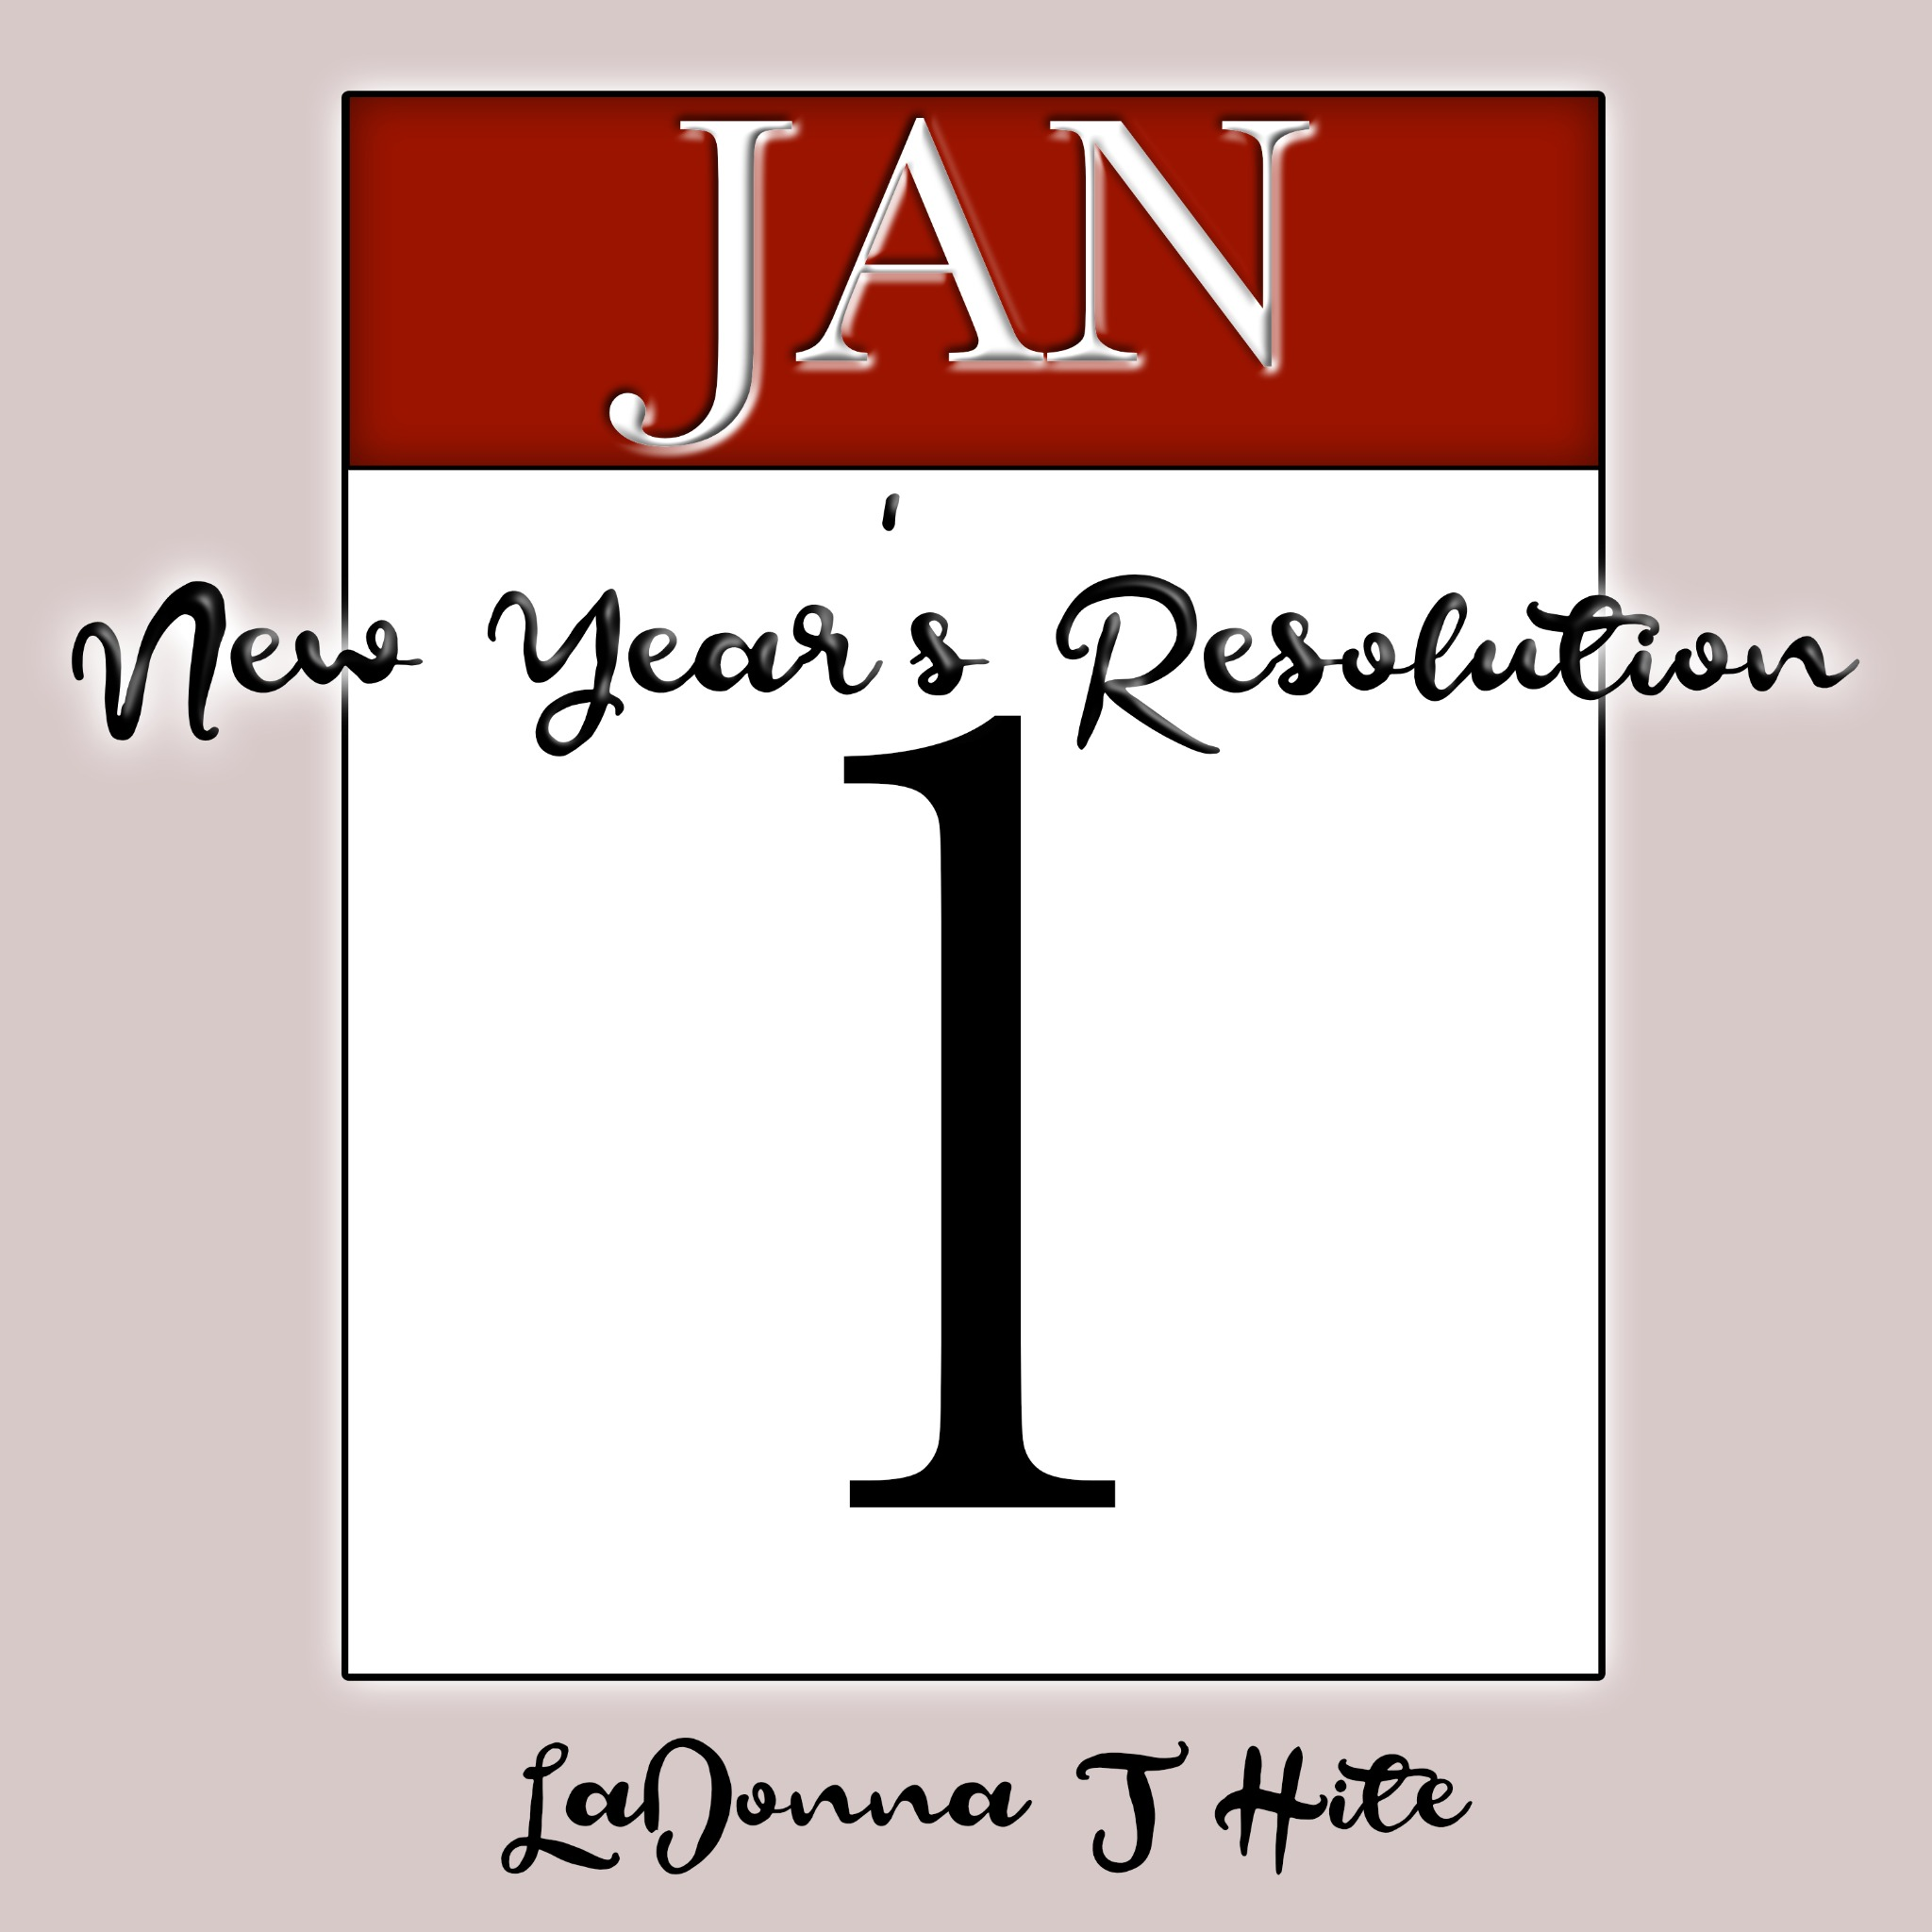 New Year's Resolution Audiobook